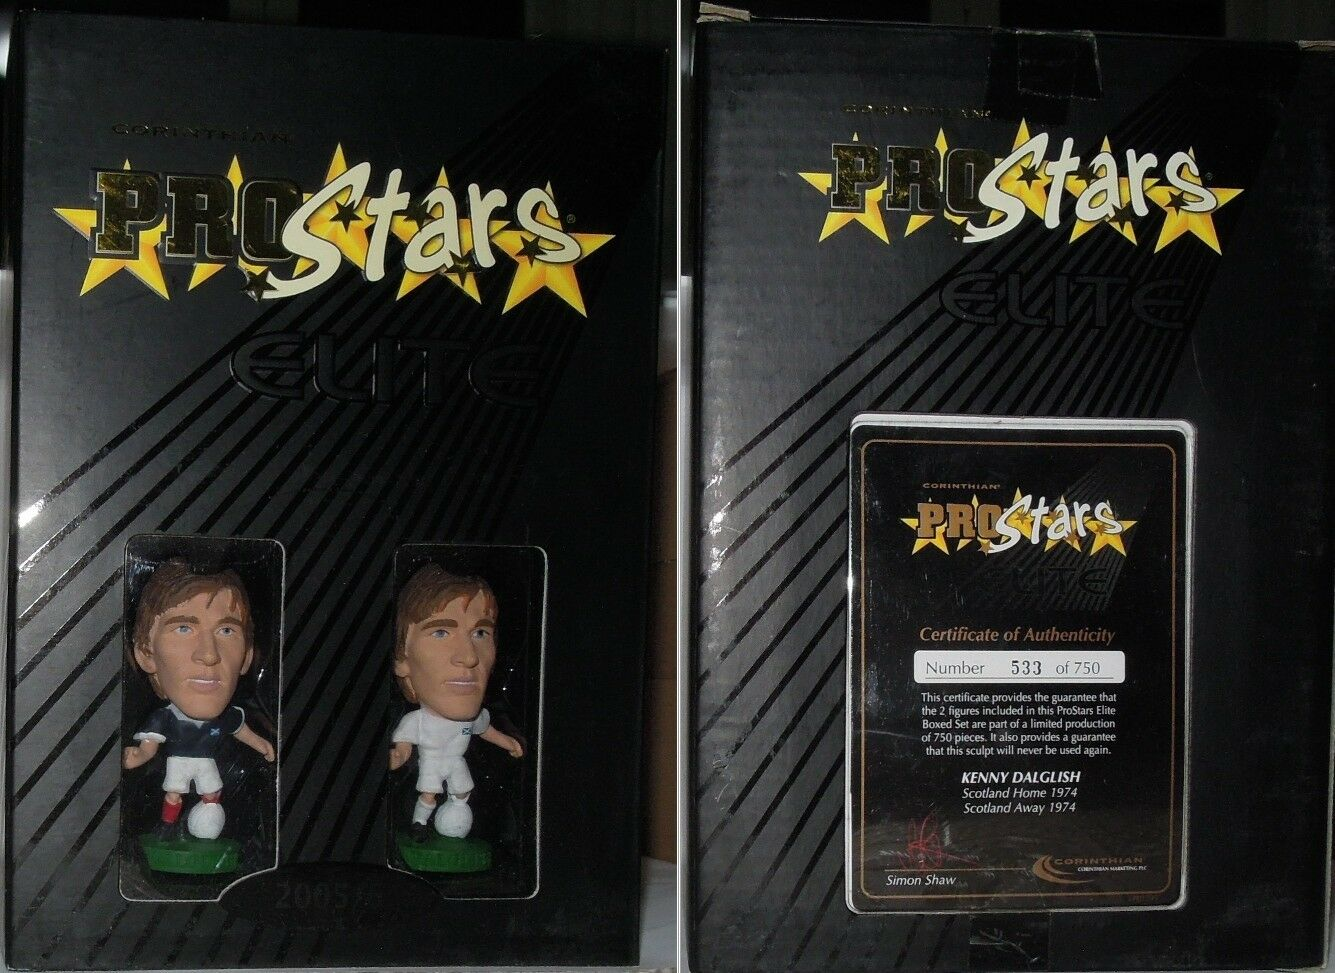 Korinthische box prostars elite kenny dalglish num 533 750